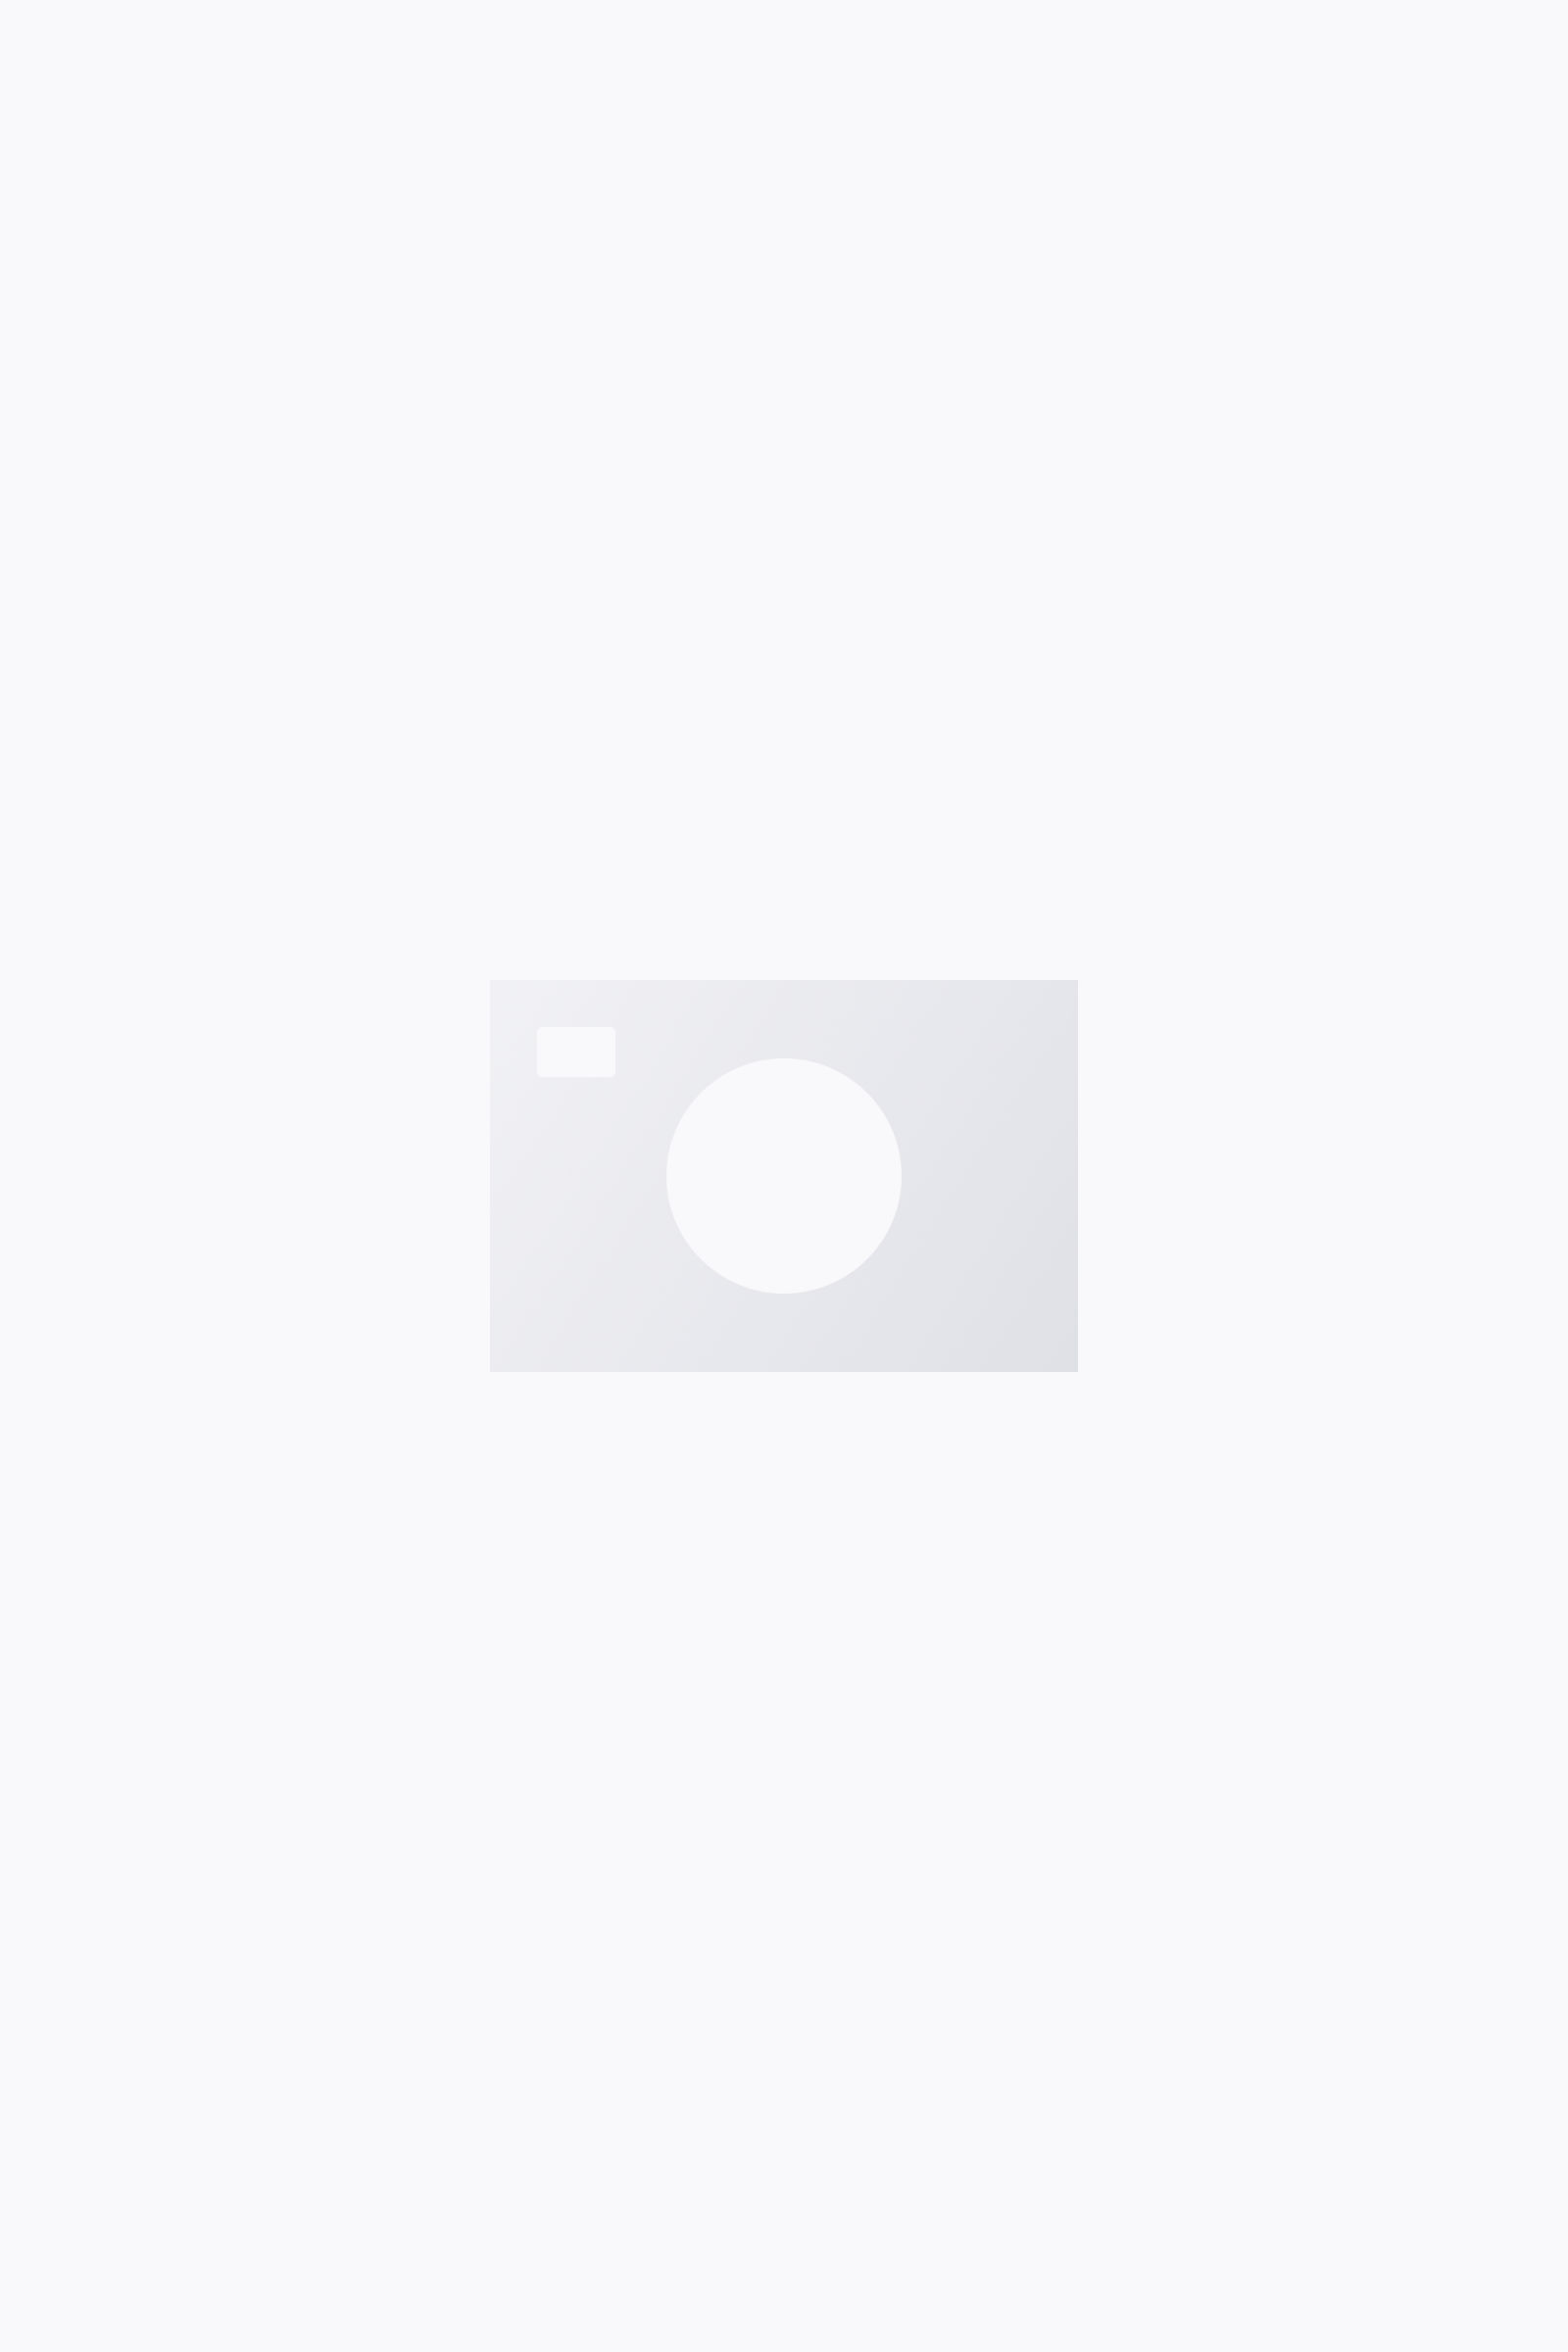 COS RELAXED CHINO TROUSERS,khaki green